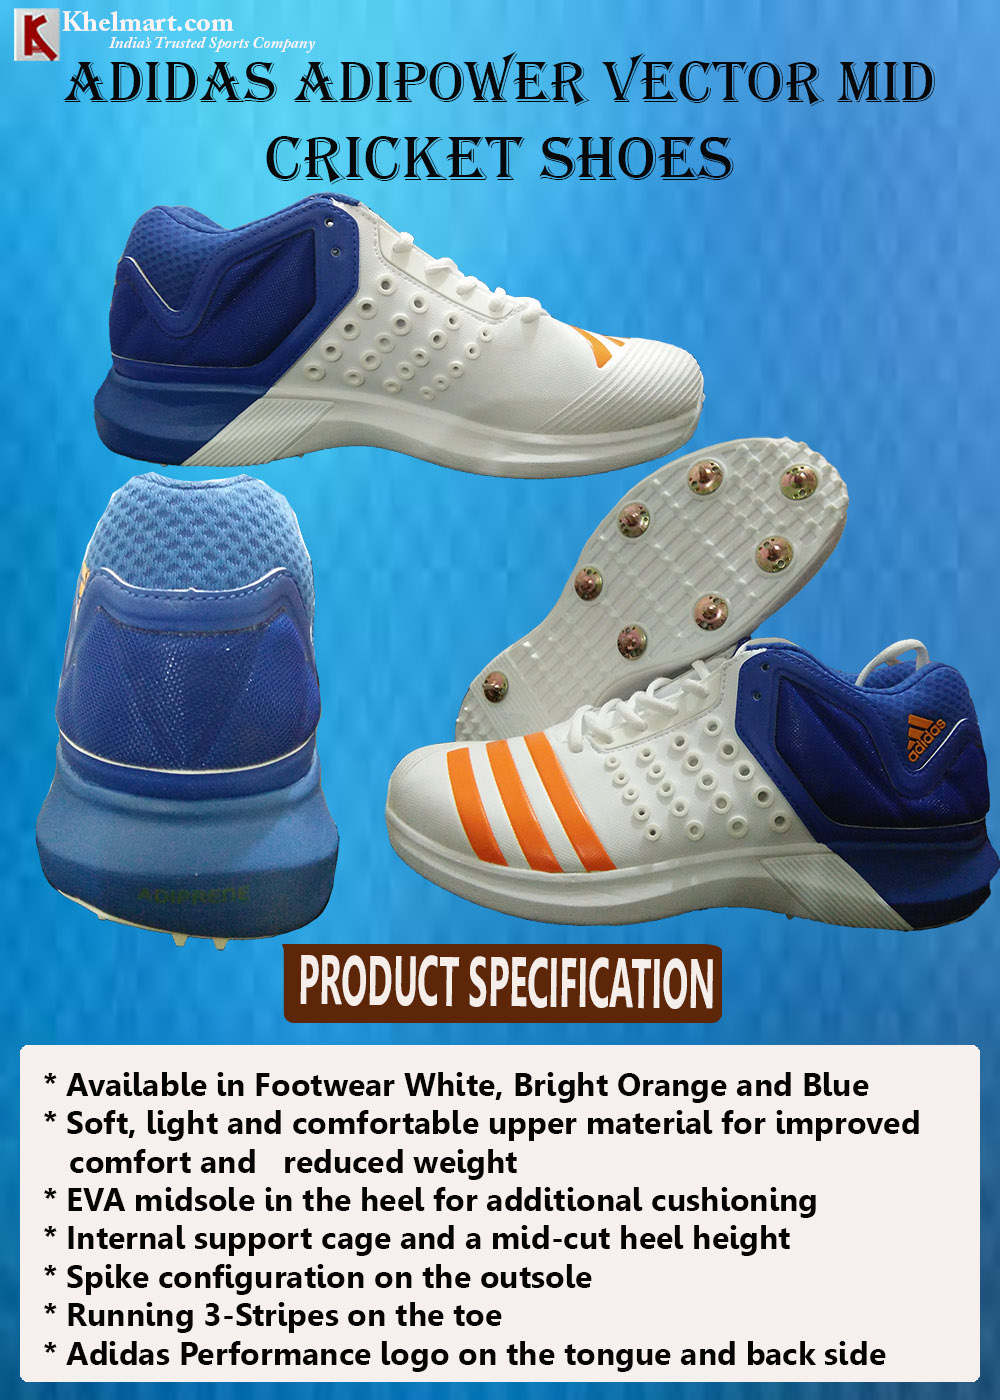 ADIDAS ADIPOWER VECTOR MID CRICKET SHOES_2